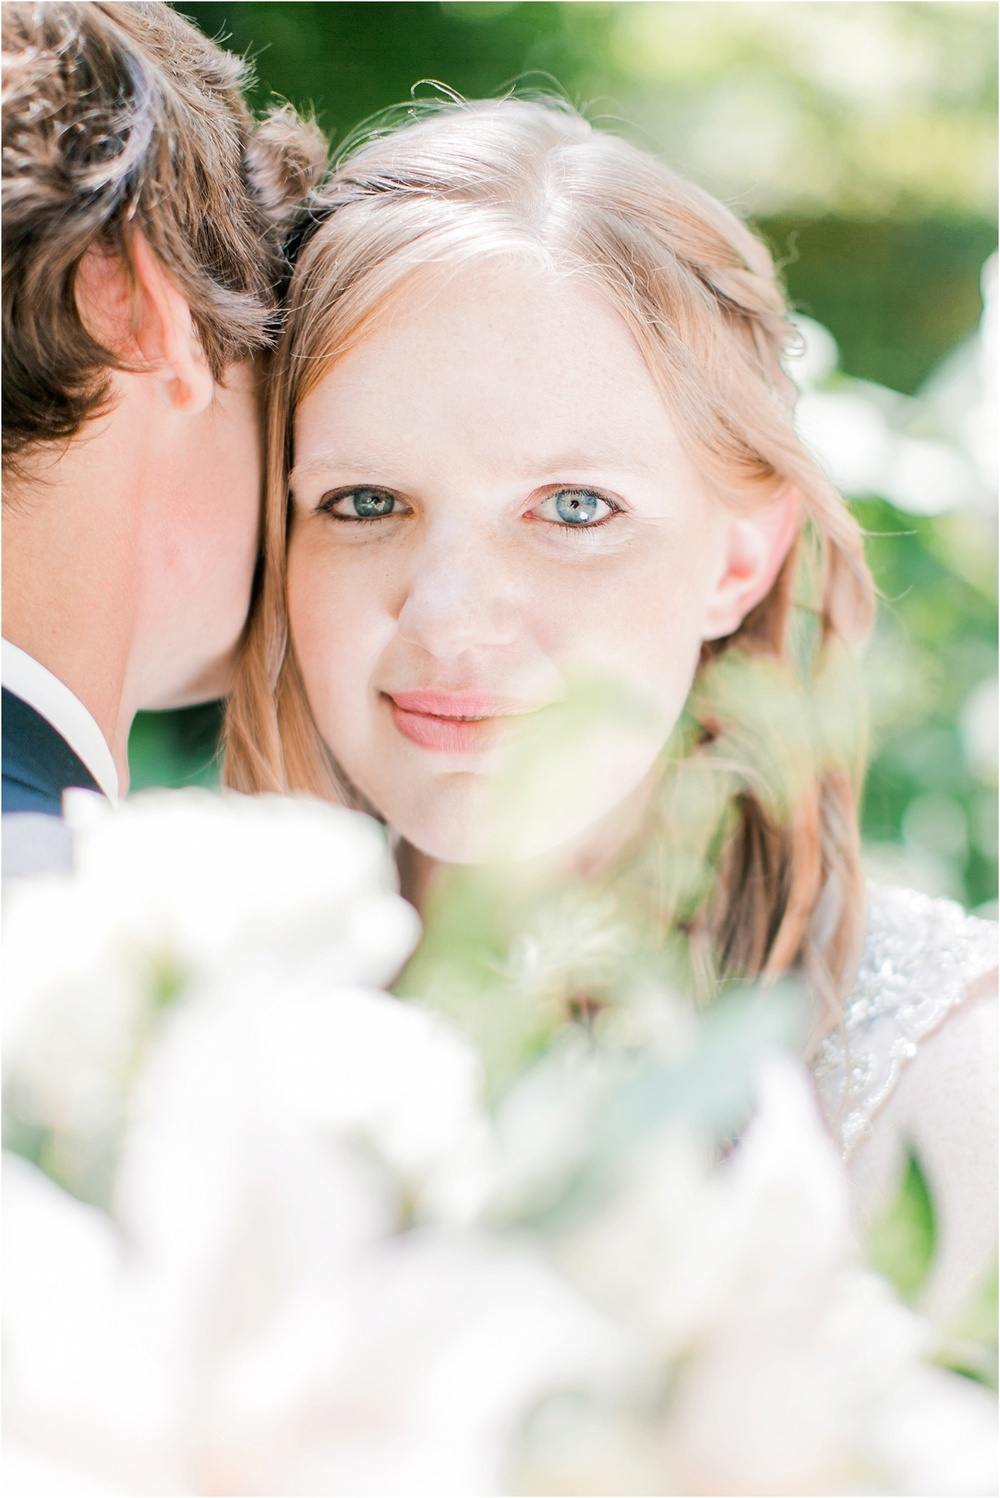 Springfield Missouri Wedding by Jordan Brittley (www.jordanbrittley.com)